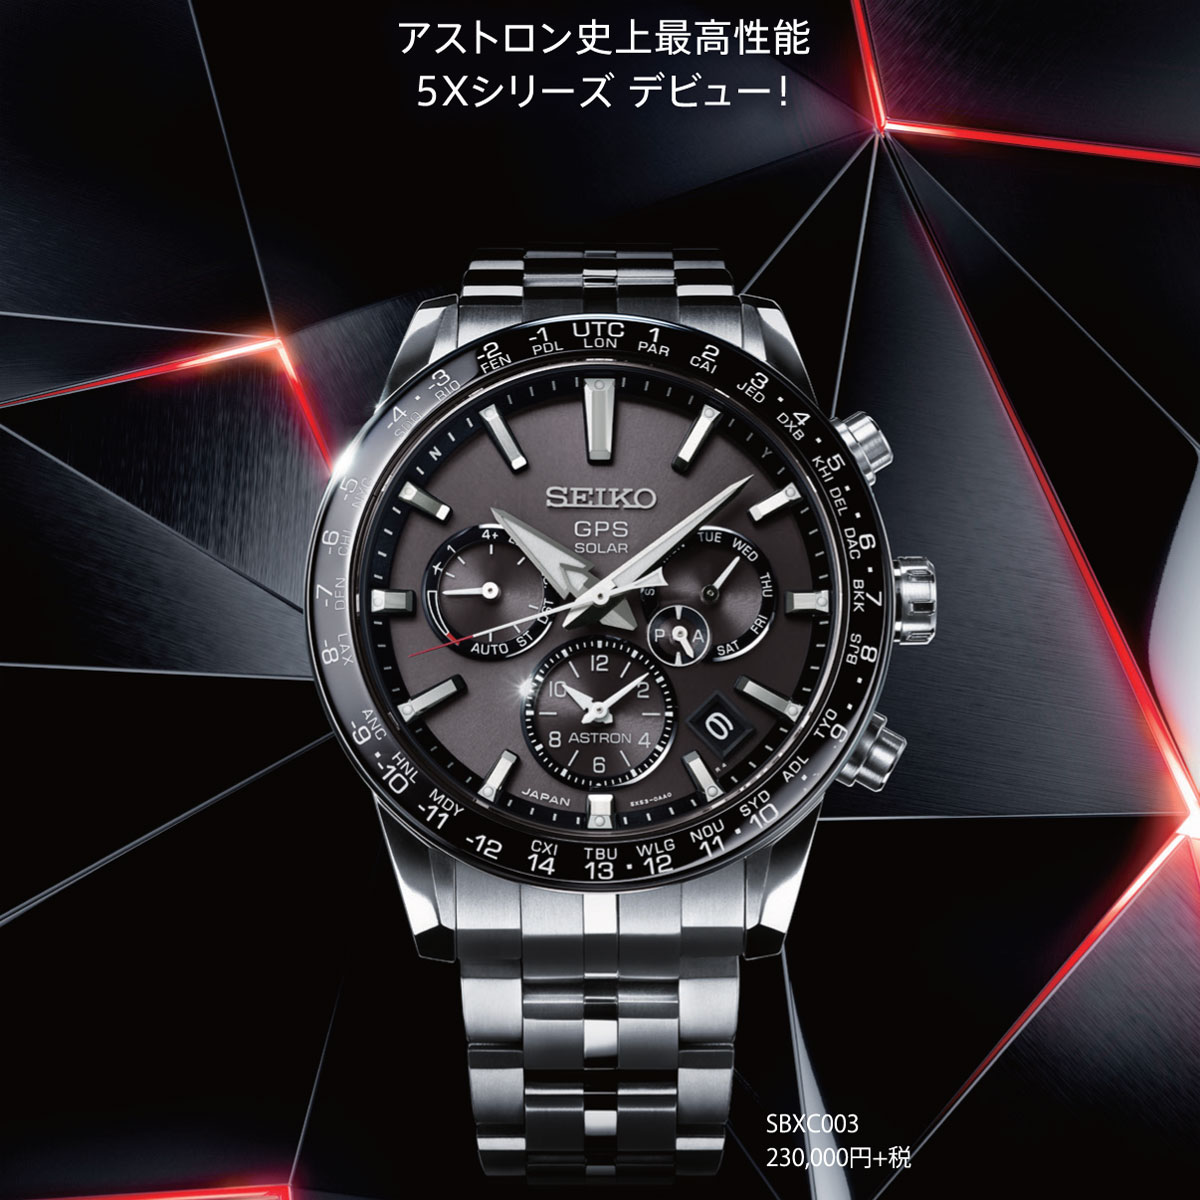 Seiko Astron Seiko Ass Tron Seiko Astron Gps Solar Watch Solar Gps Satellite Radio Time Signal Watch Men Sbxc003